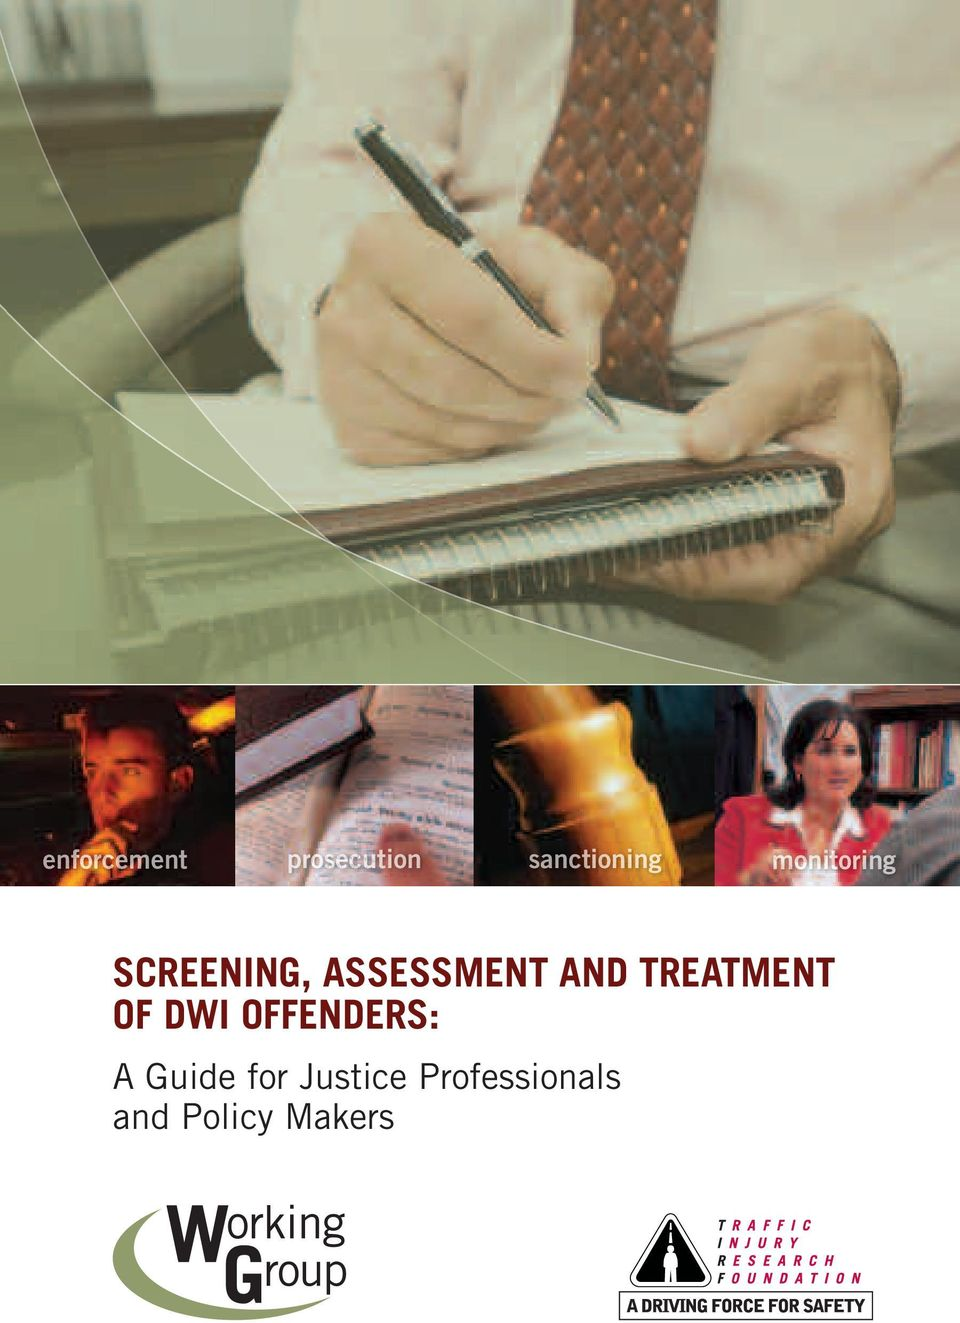 ASSESSMENT AND TREATMENT OF DWI OFFENDERS: